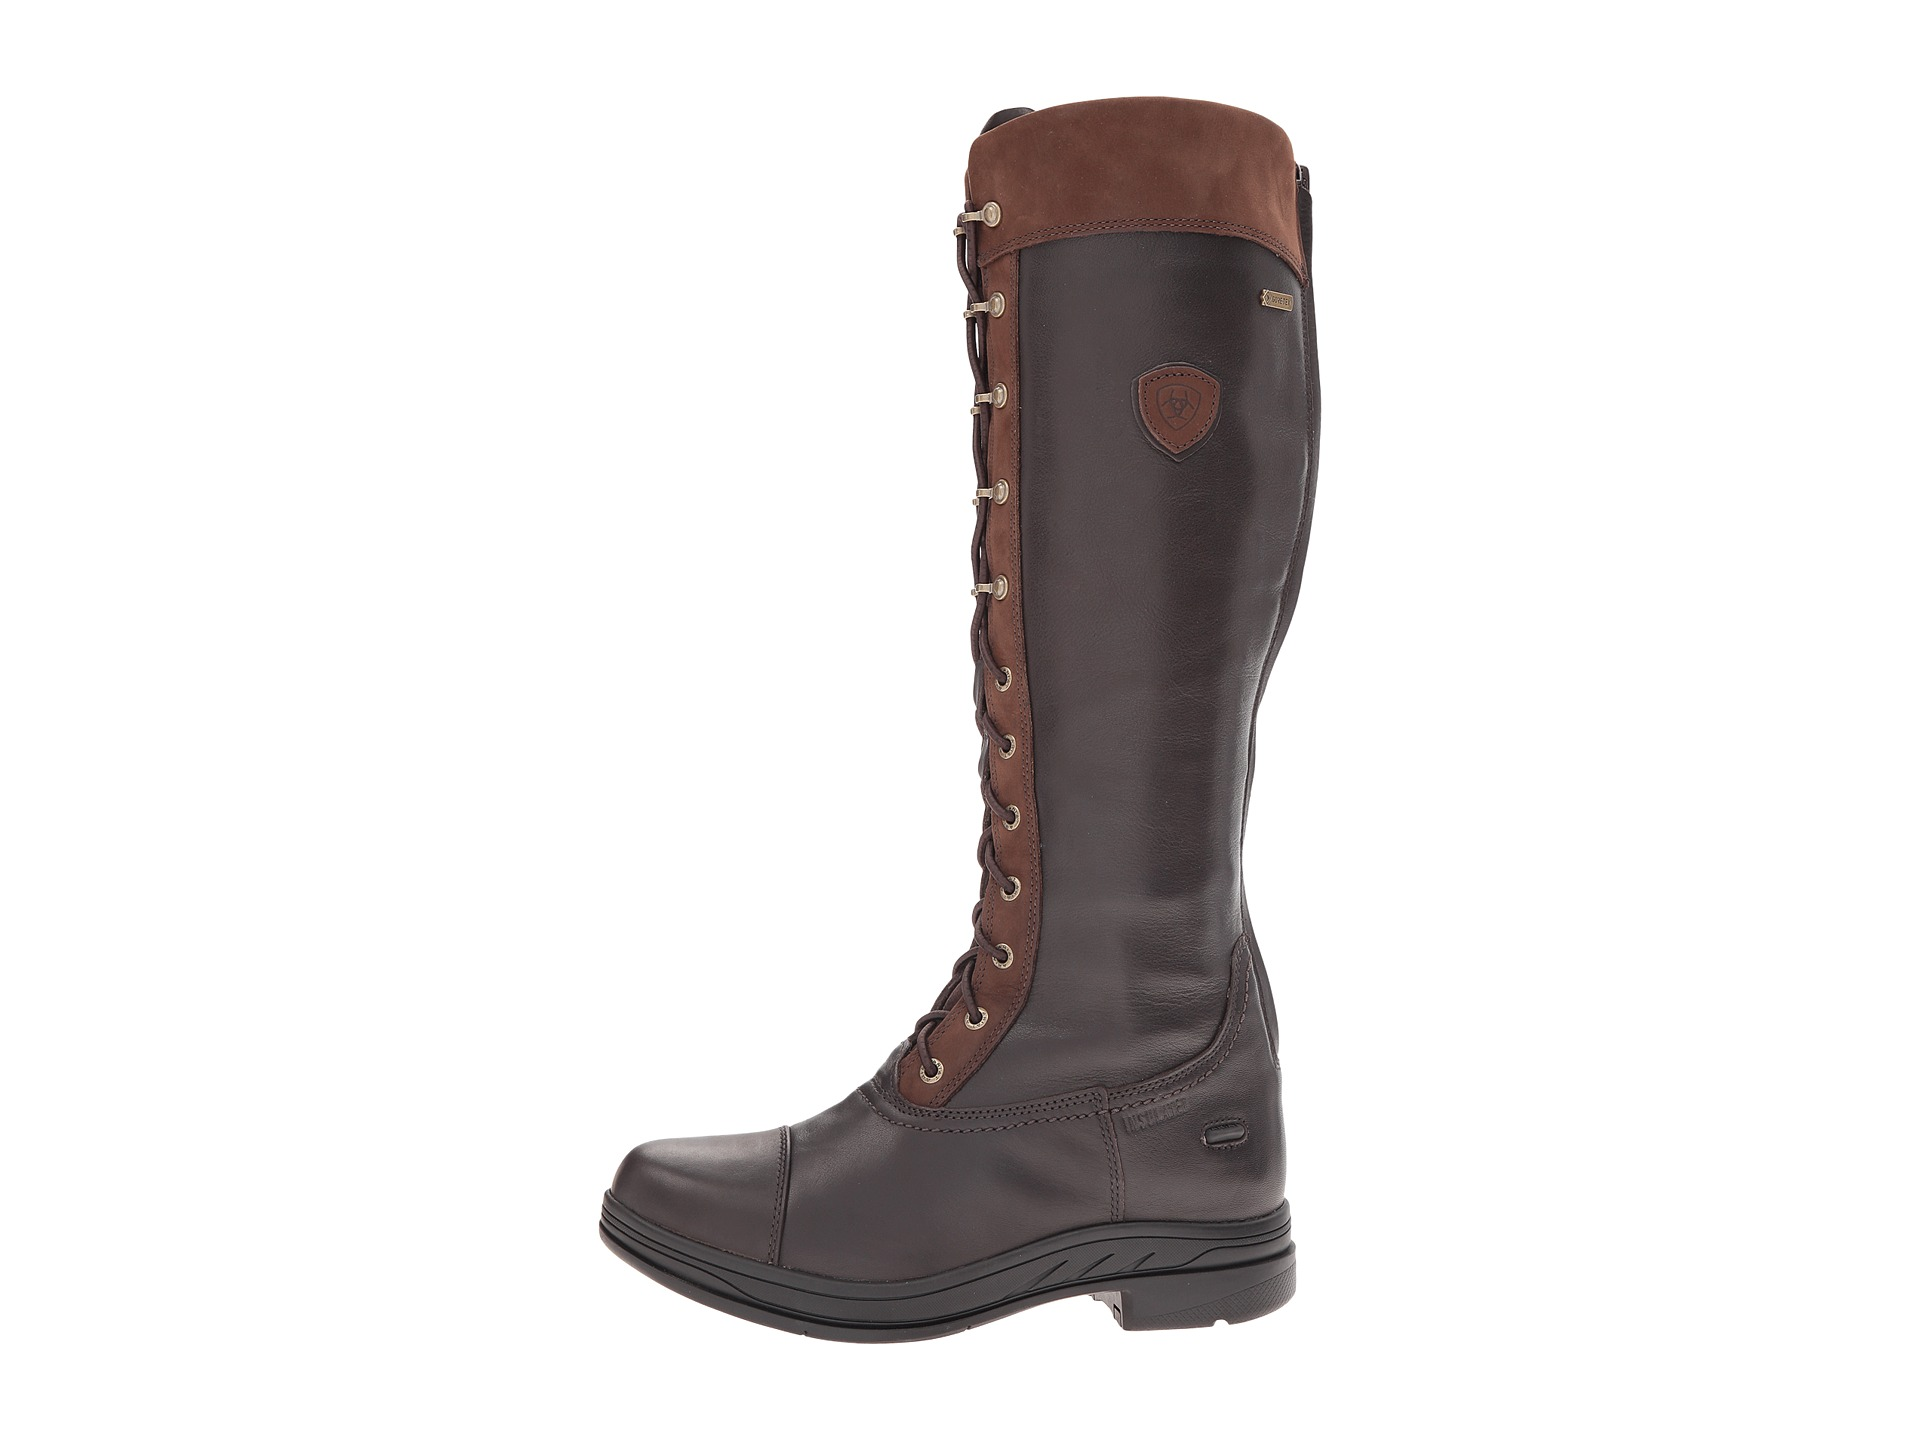 Ariat Coniston Pro GTX Insulated at Zappos.com